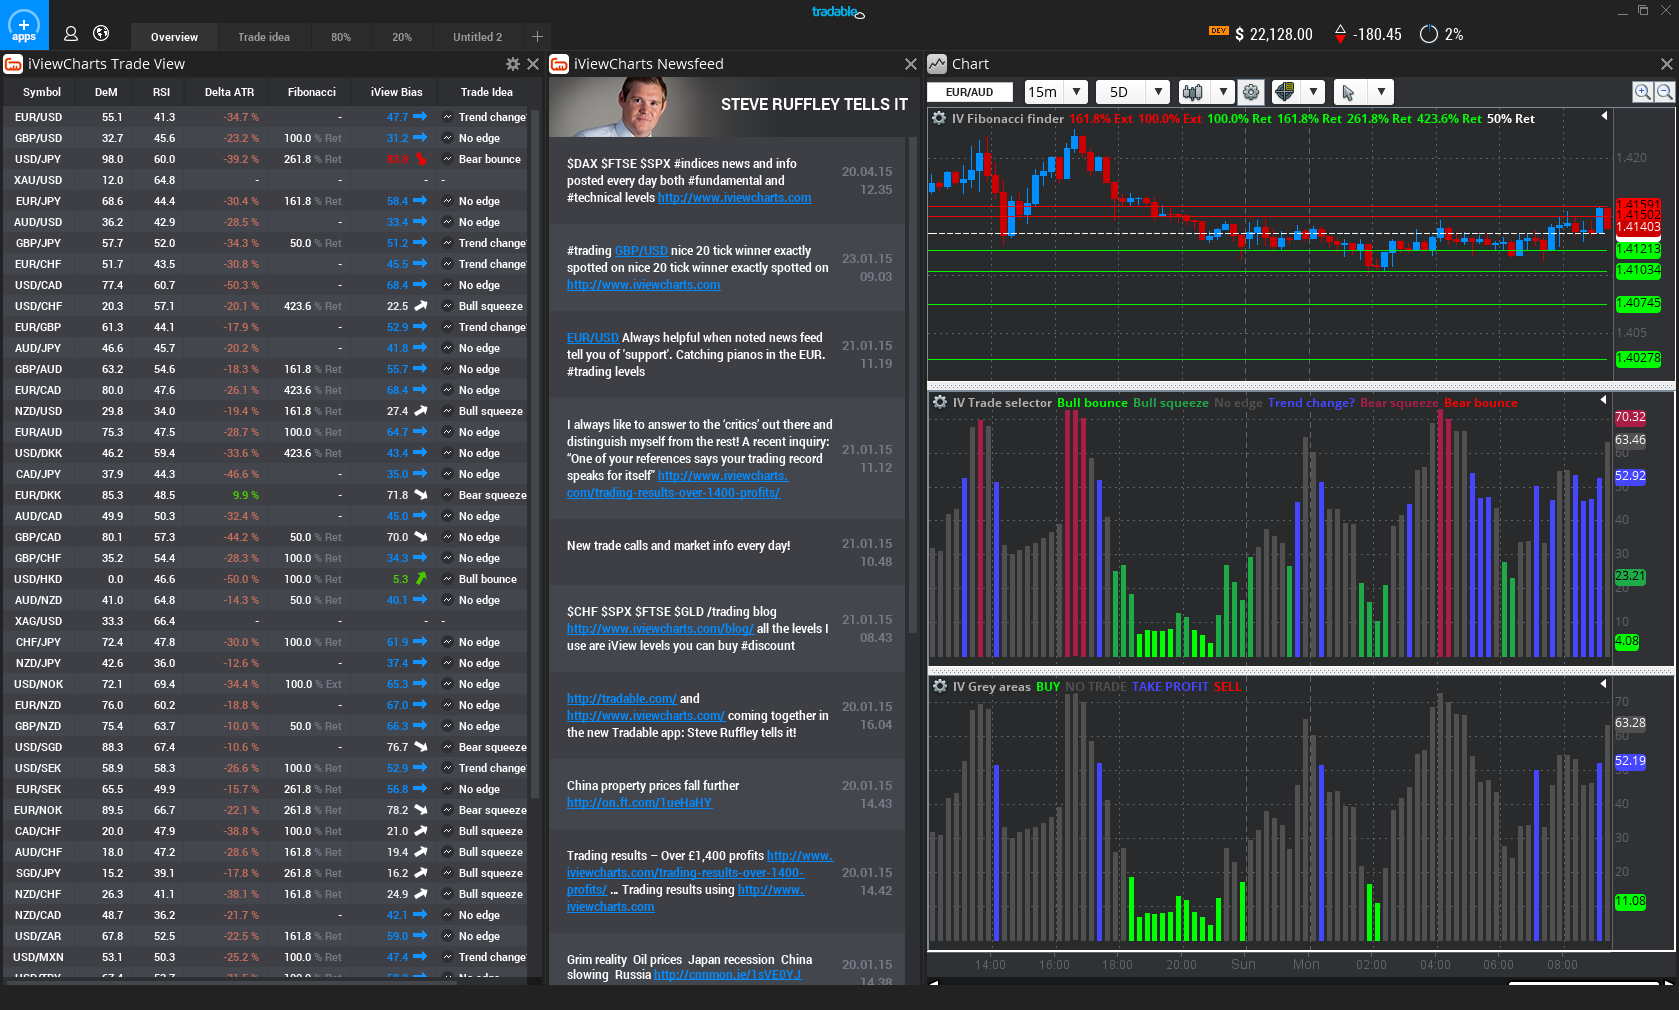 iViewcharts within the Tradable platform